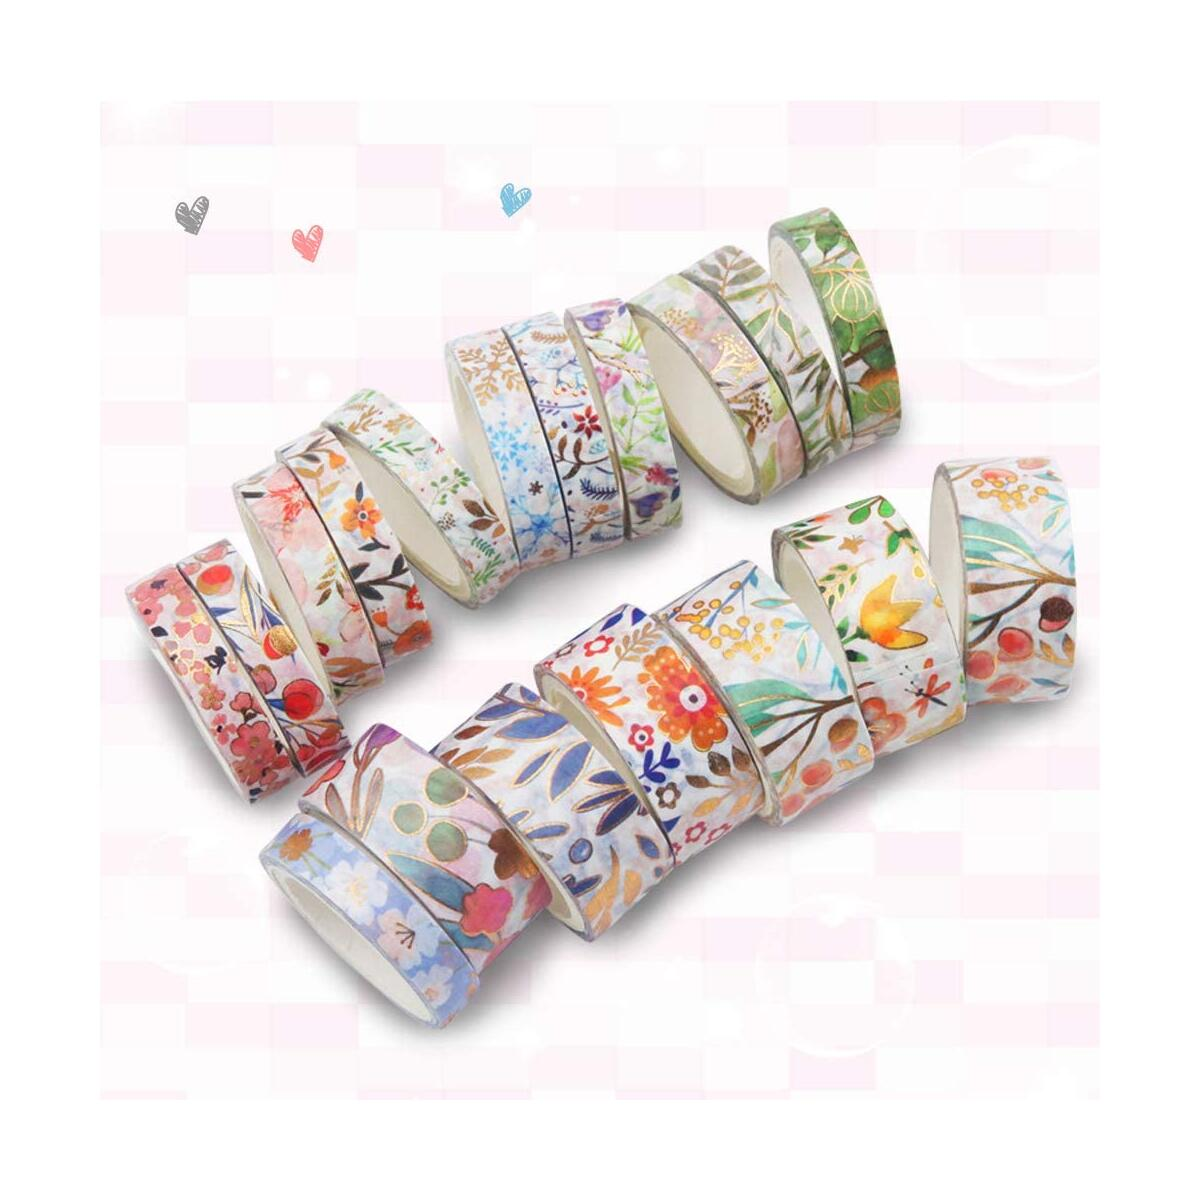 18 Rolls Washi Tape Set, 8/15mm Wide Floral Gold Masking Tape, Foil Gold Skinny Decorative Adhesive Tape for Scrapbook, Bullet Journal, Planner, DIY Arts and Crafts, Gift Wrapping